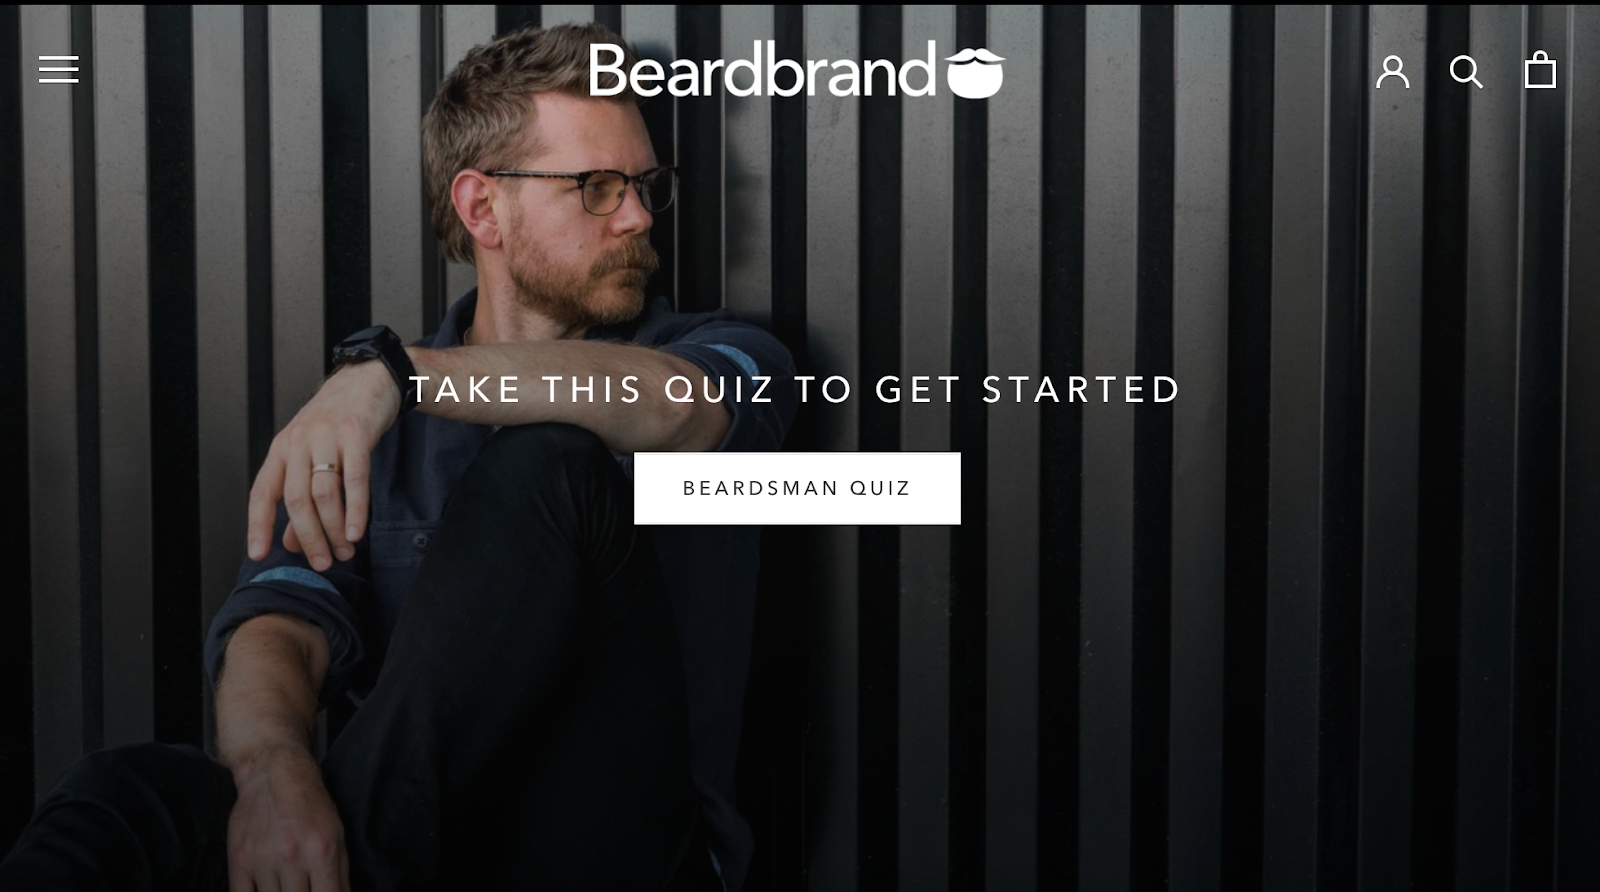 Beardbrand homepage with a bearded man in glasses in the background